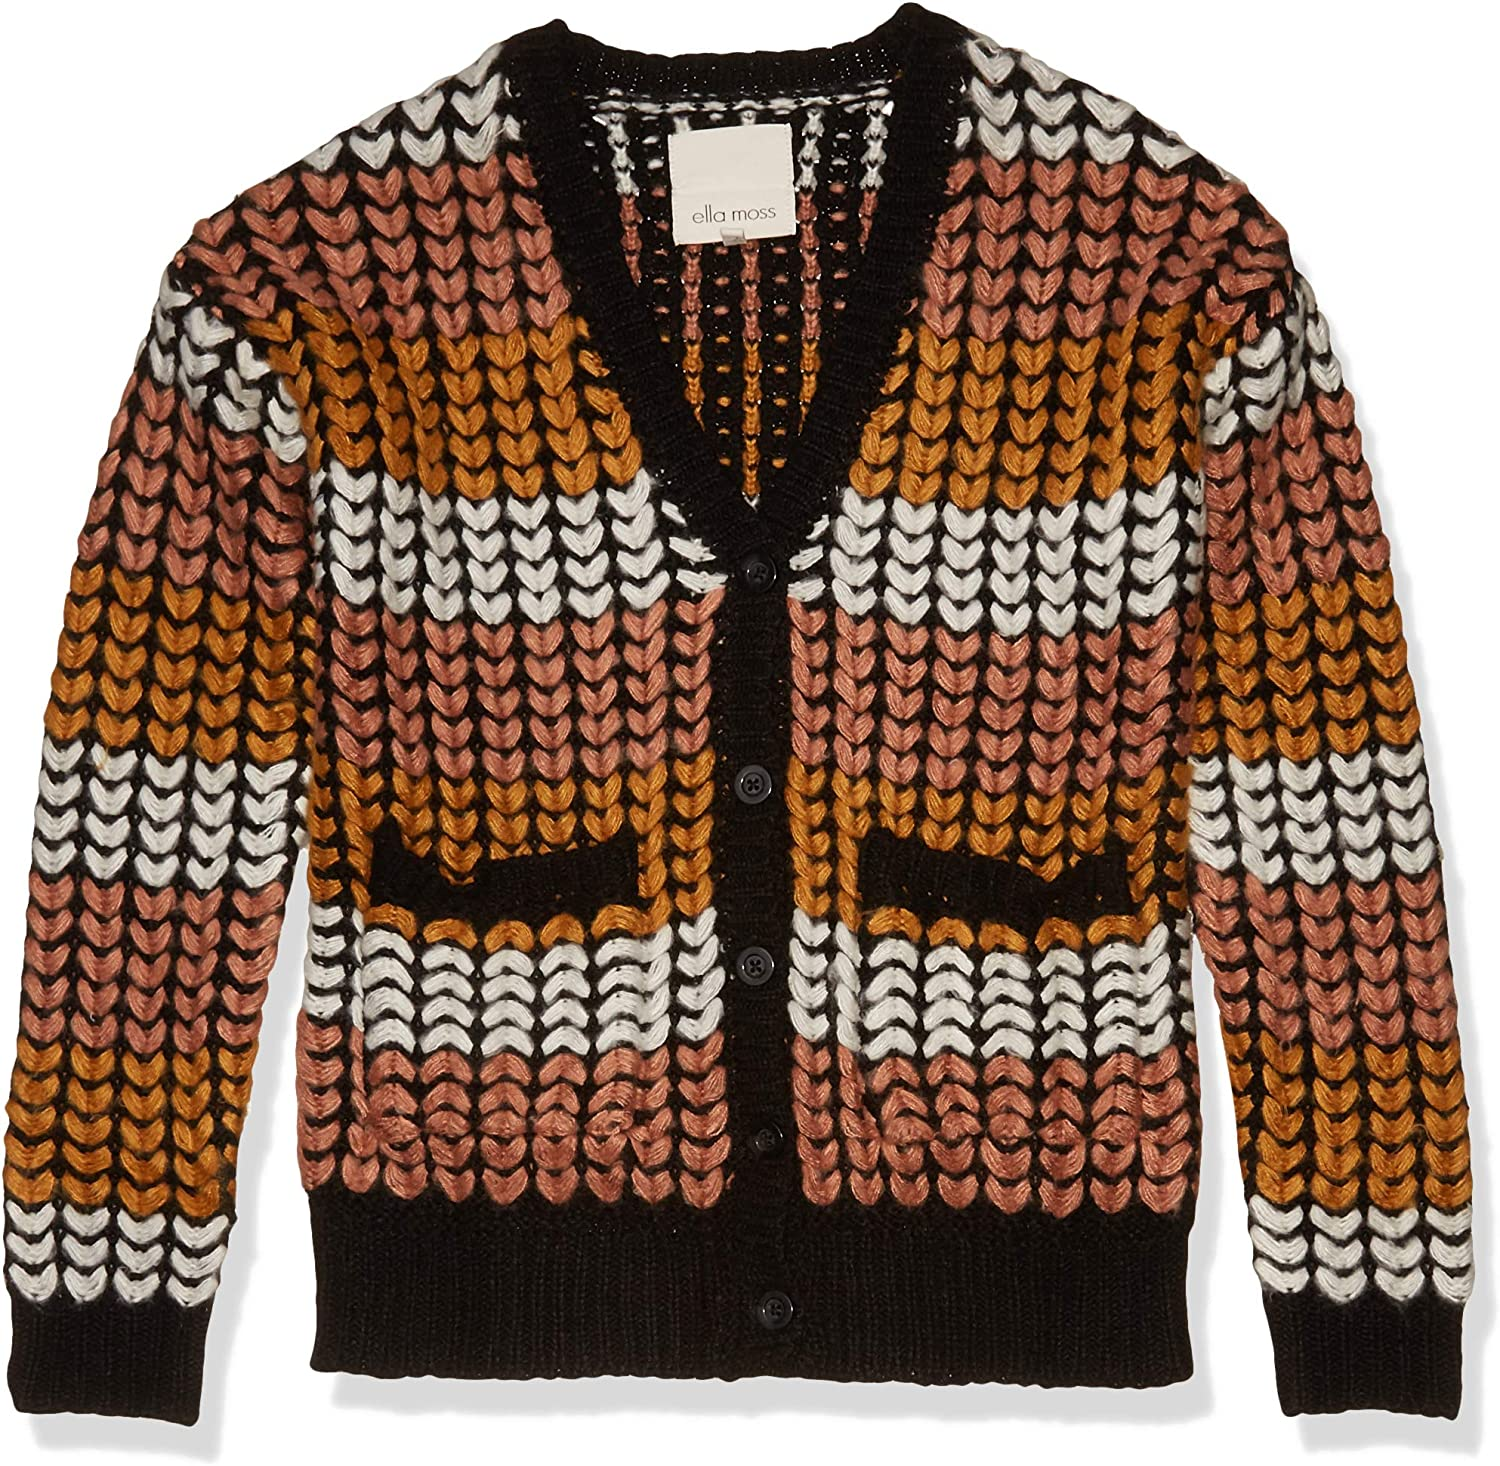 Ella Moss Women's Elyse Challenge the Miami Mall lowest price of Japan Comfort Cozy Sweate Down Cardigan Button